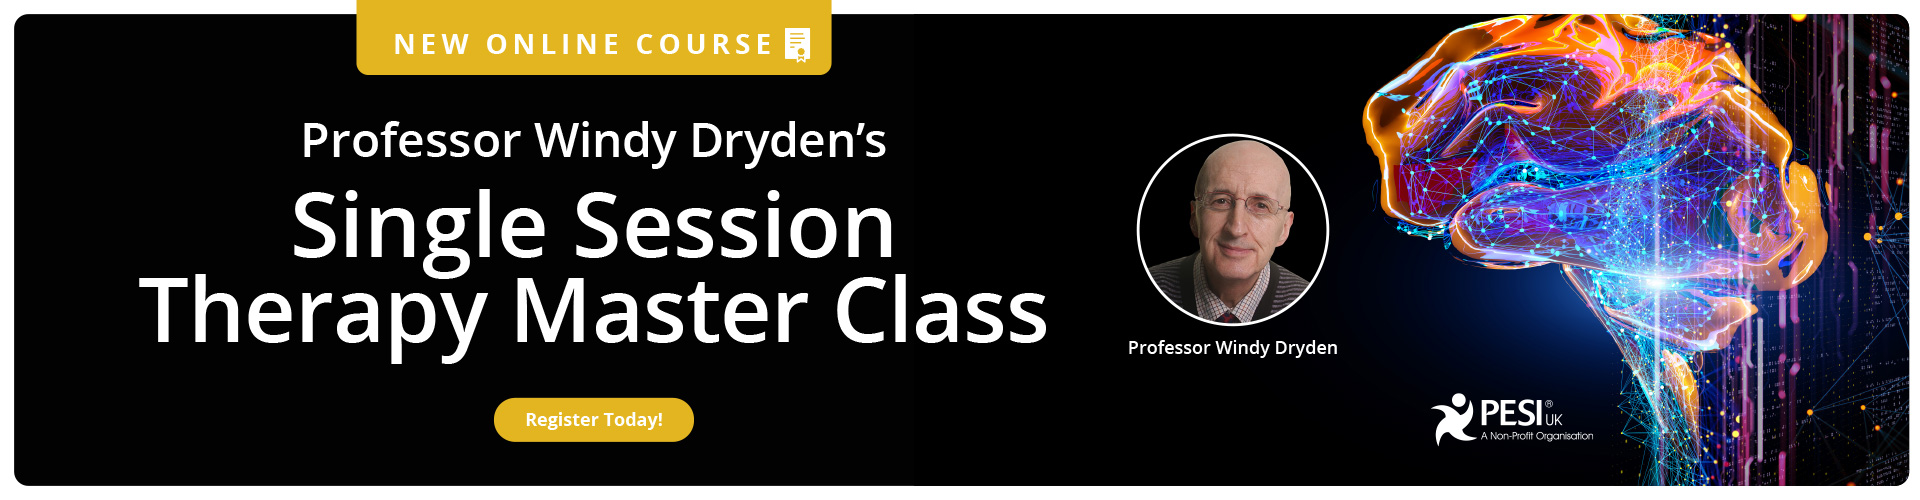 Professor Windy Dryden's Single Session Therapy Master Class